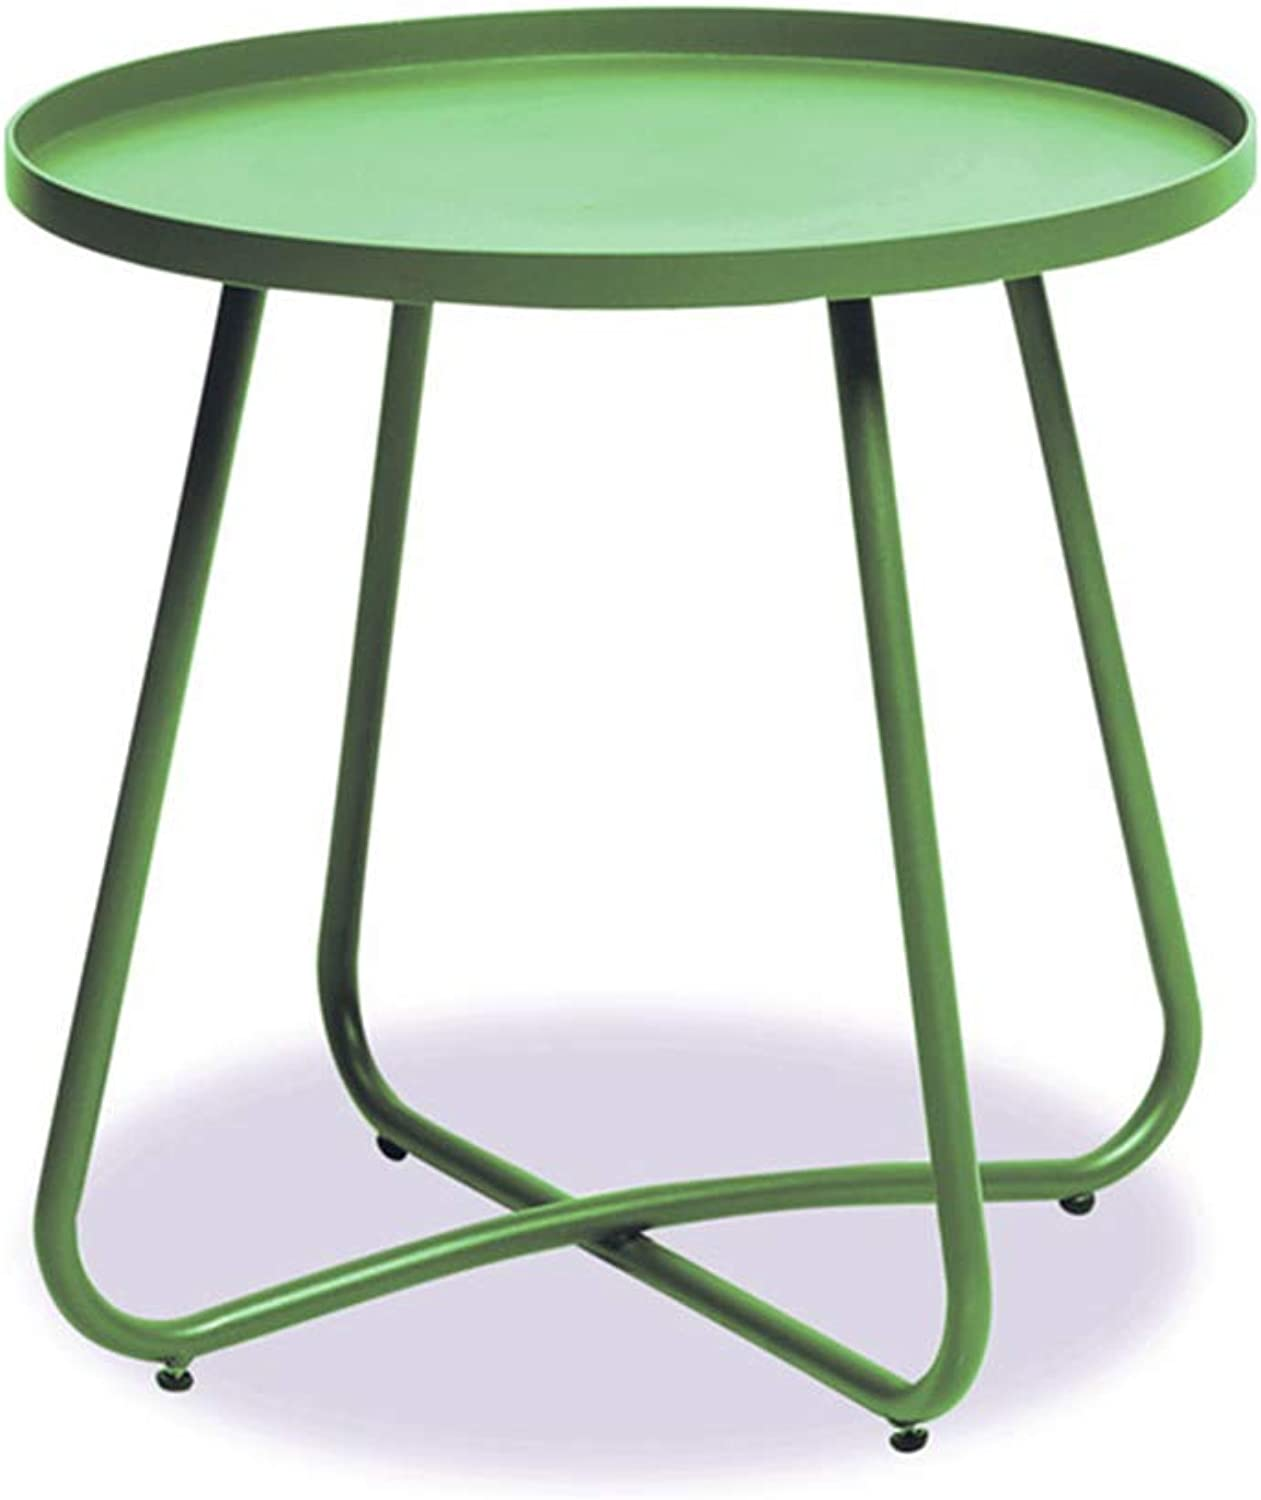 JCOCO Nordic Minimalist Small Table, Creative Personality Living Room Balcony Small Coffee Table Round Side Mini Coffee Table (color   Green)